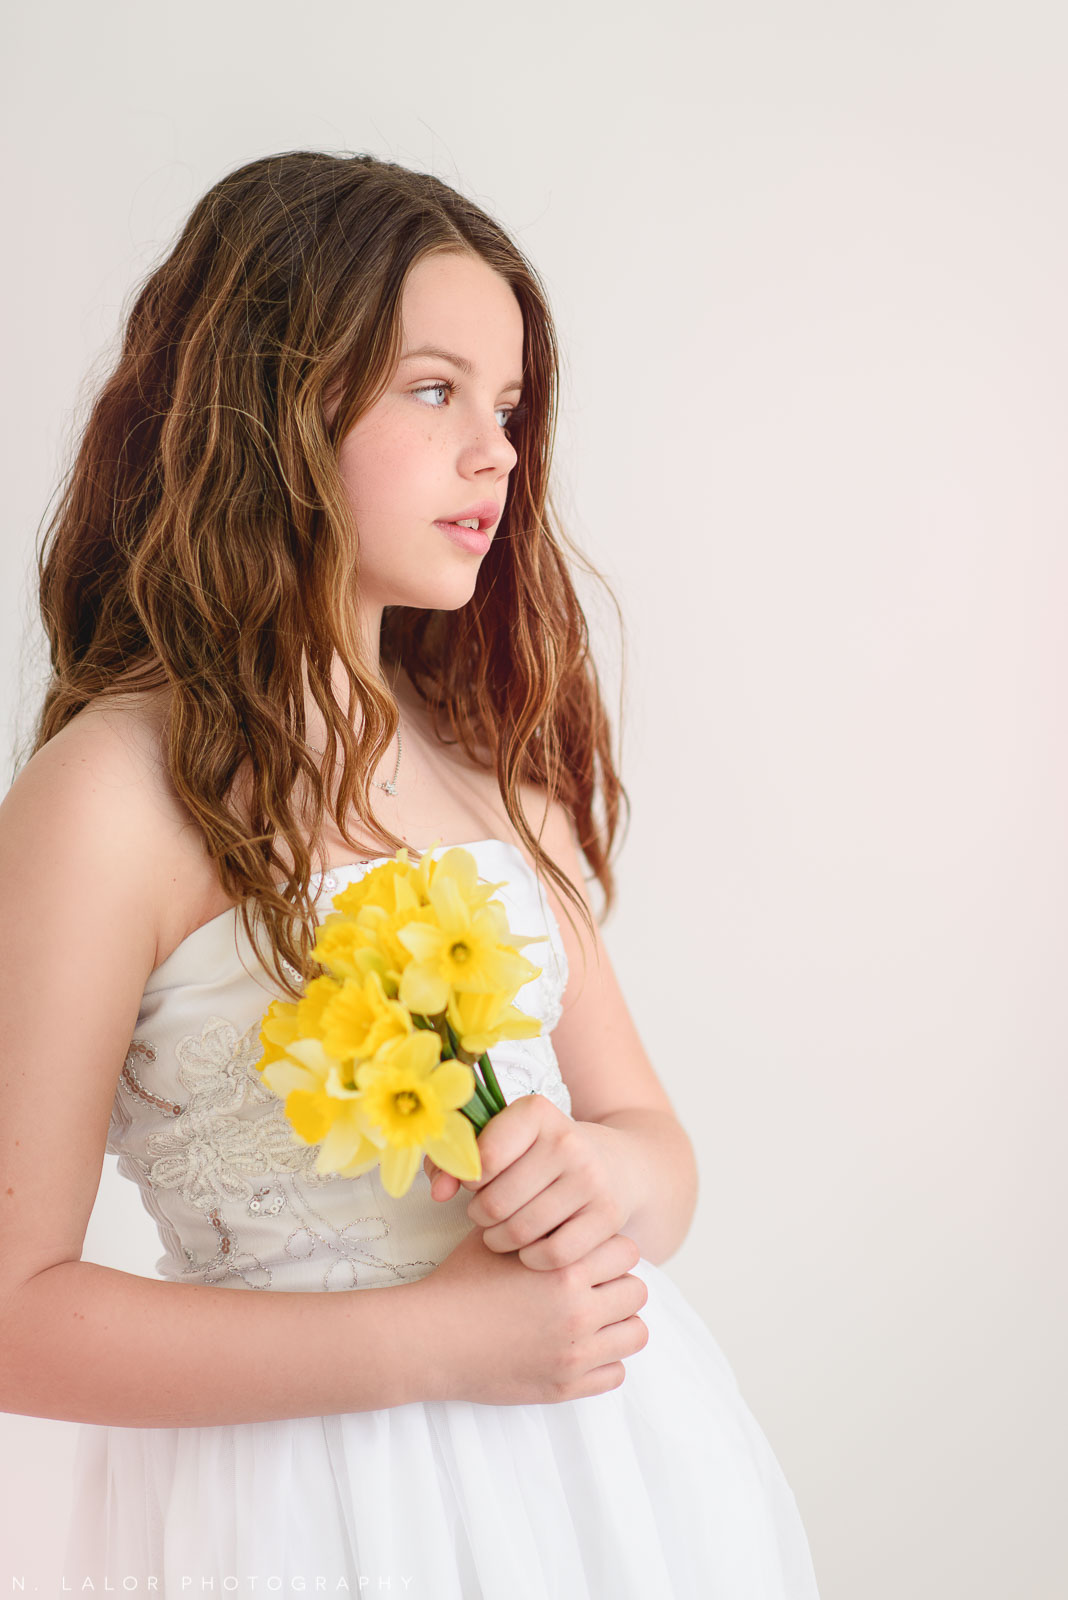 Spring flower styled photoshoot by N. Lalor Photography. Greenwich, CT.